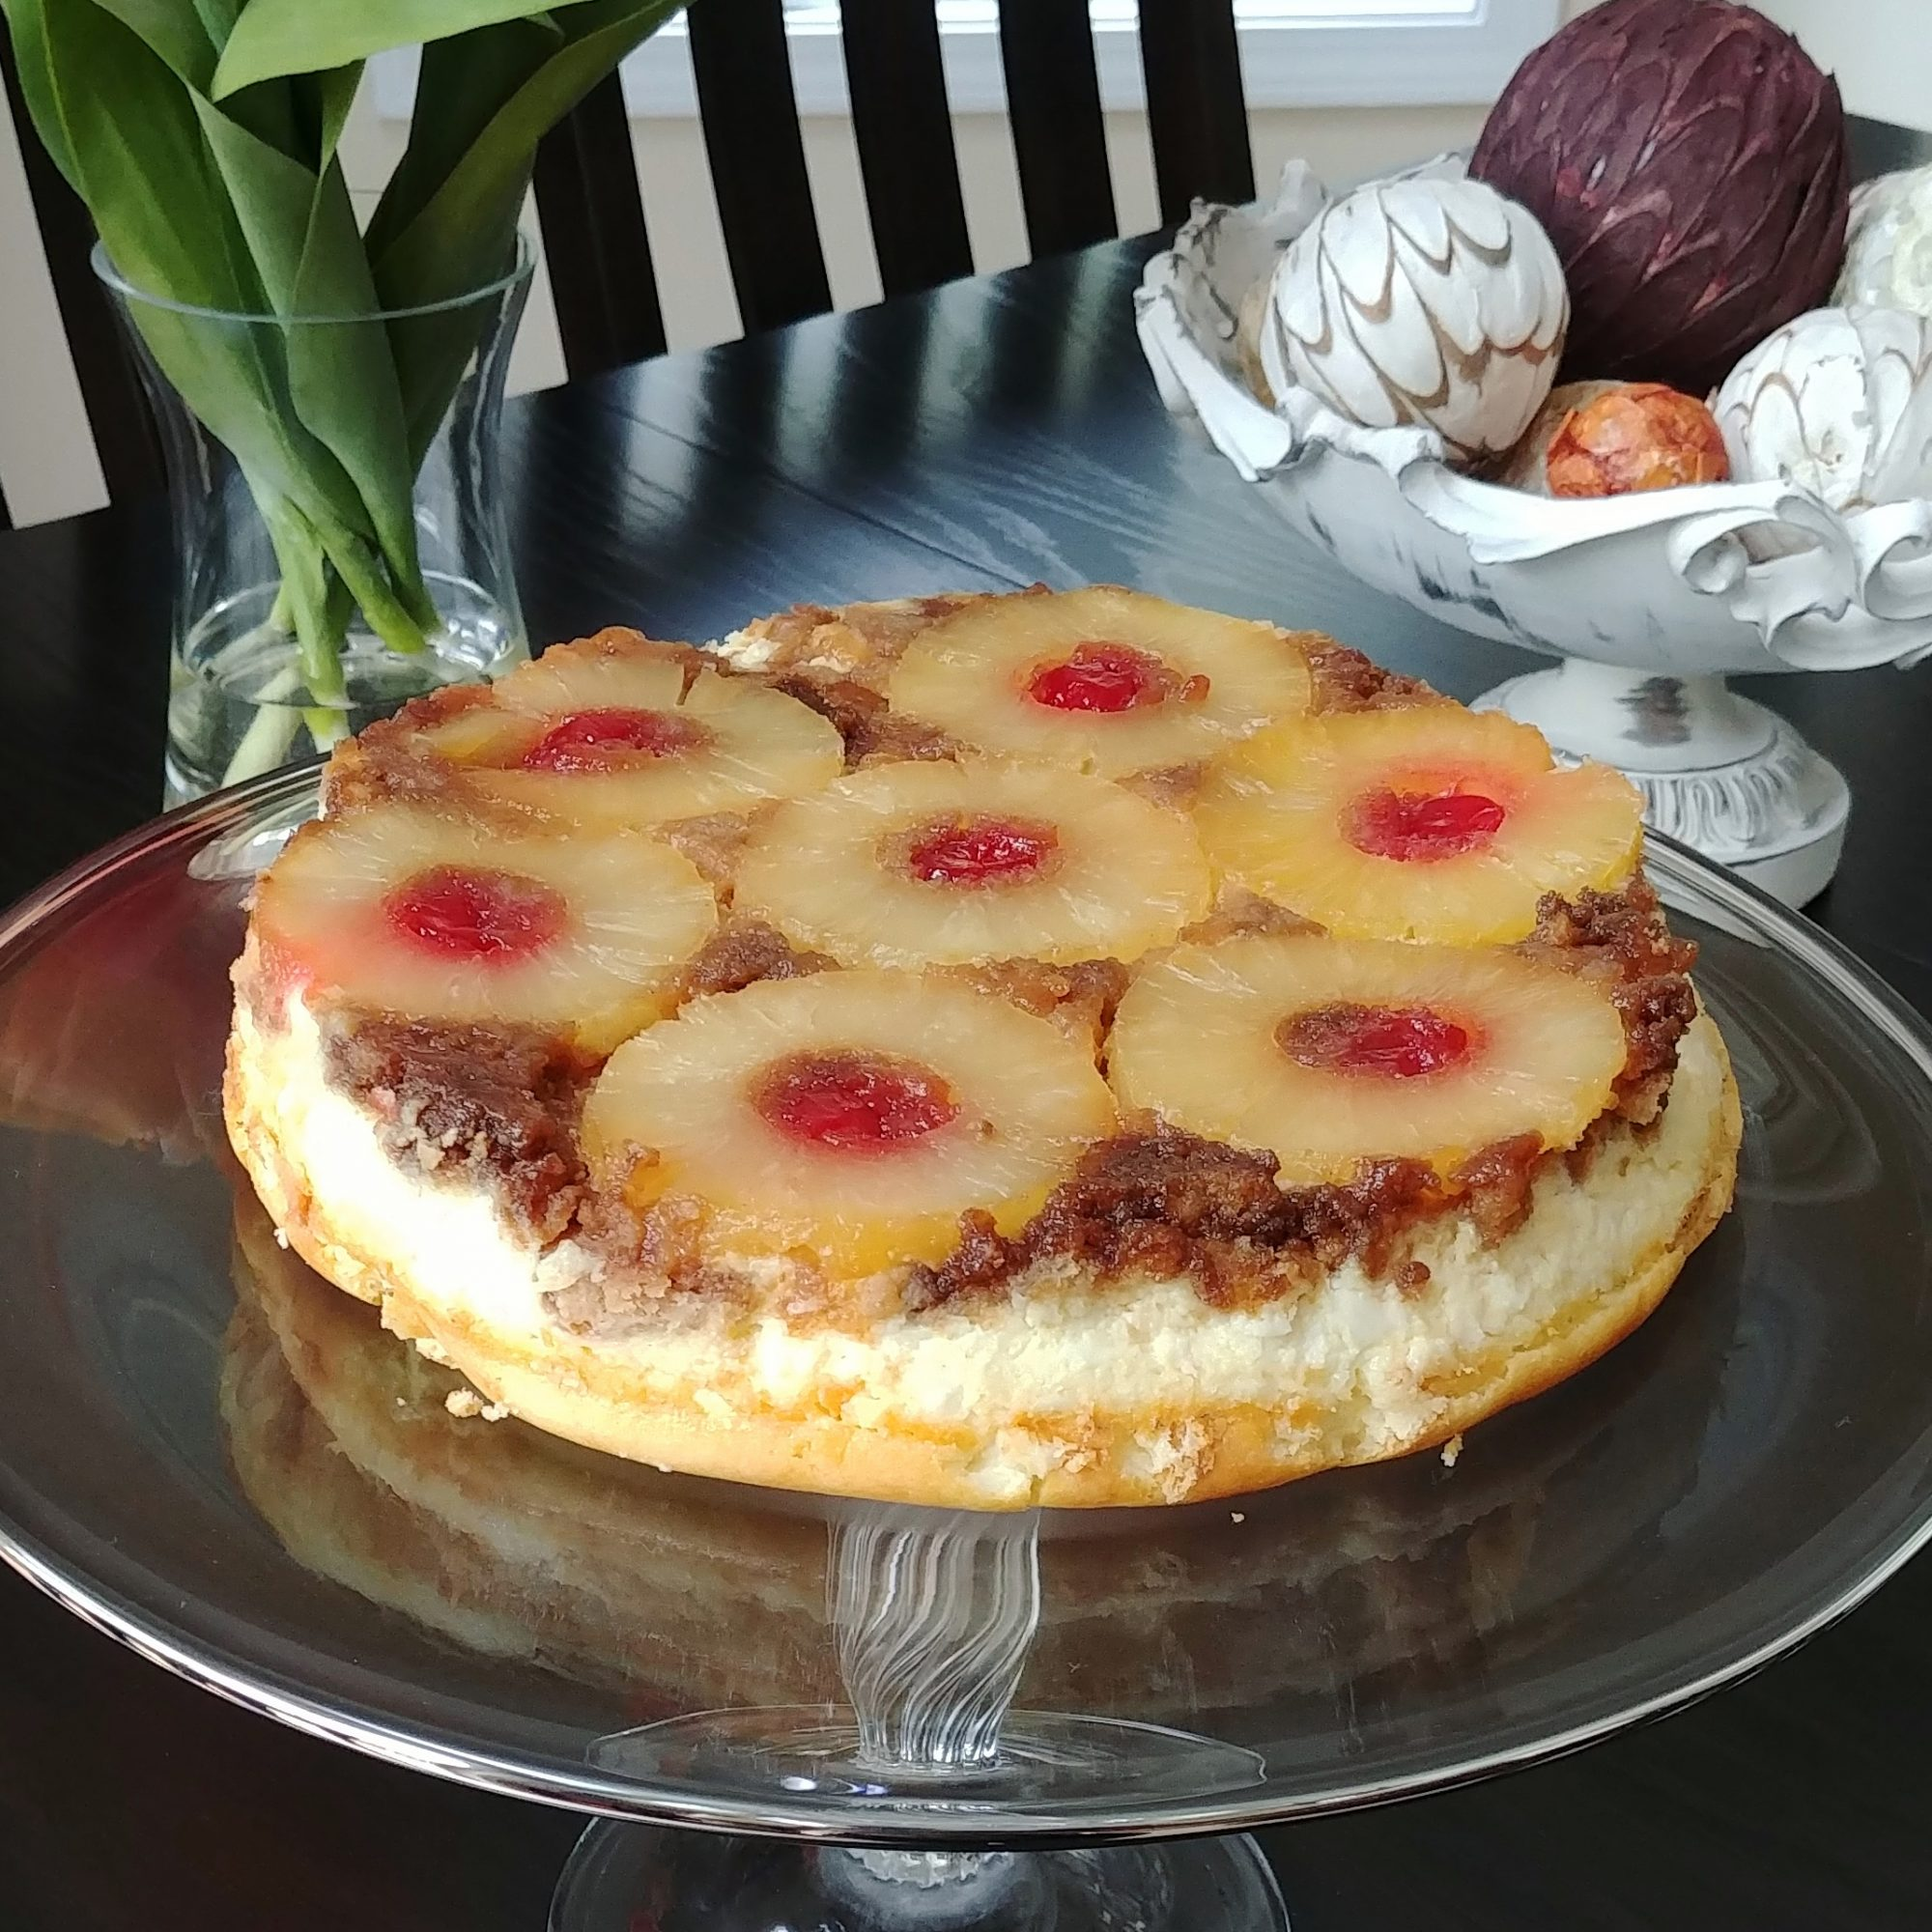 Pineapple Upside-Down Cheesecake on a glass cake stand